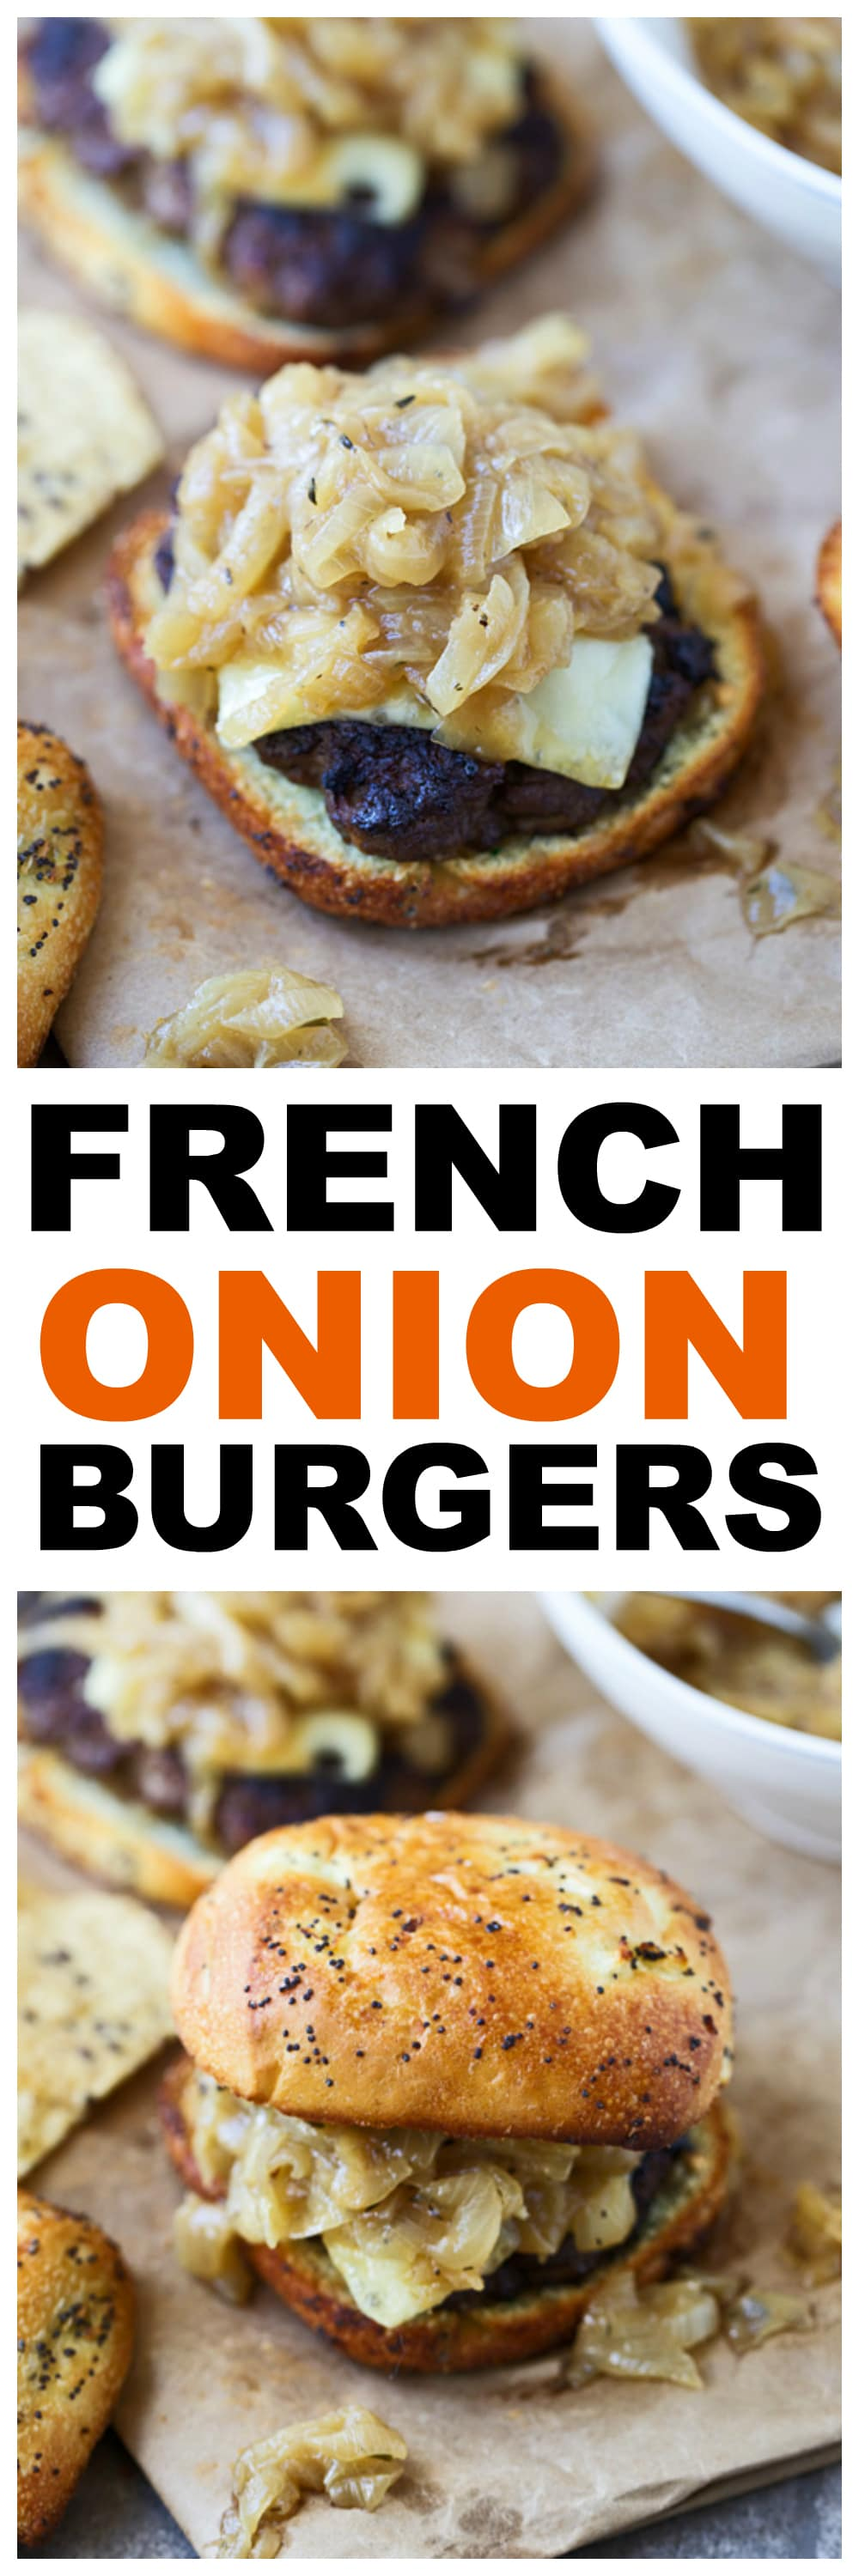 French Onion Cheeseburgers -- All of the flavors of French onion soup in burger form!